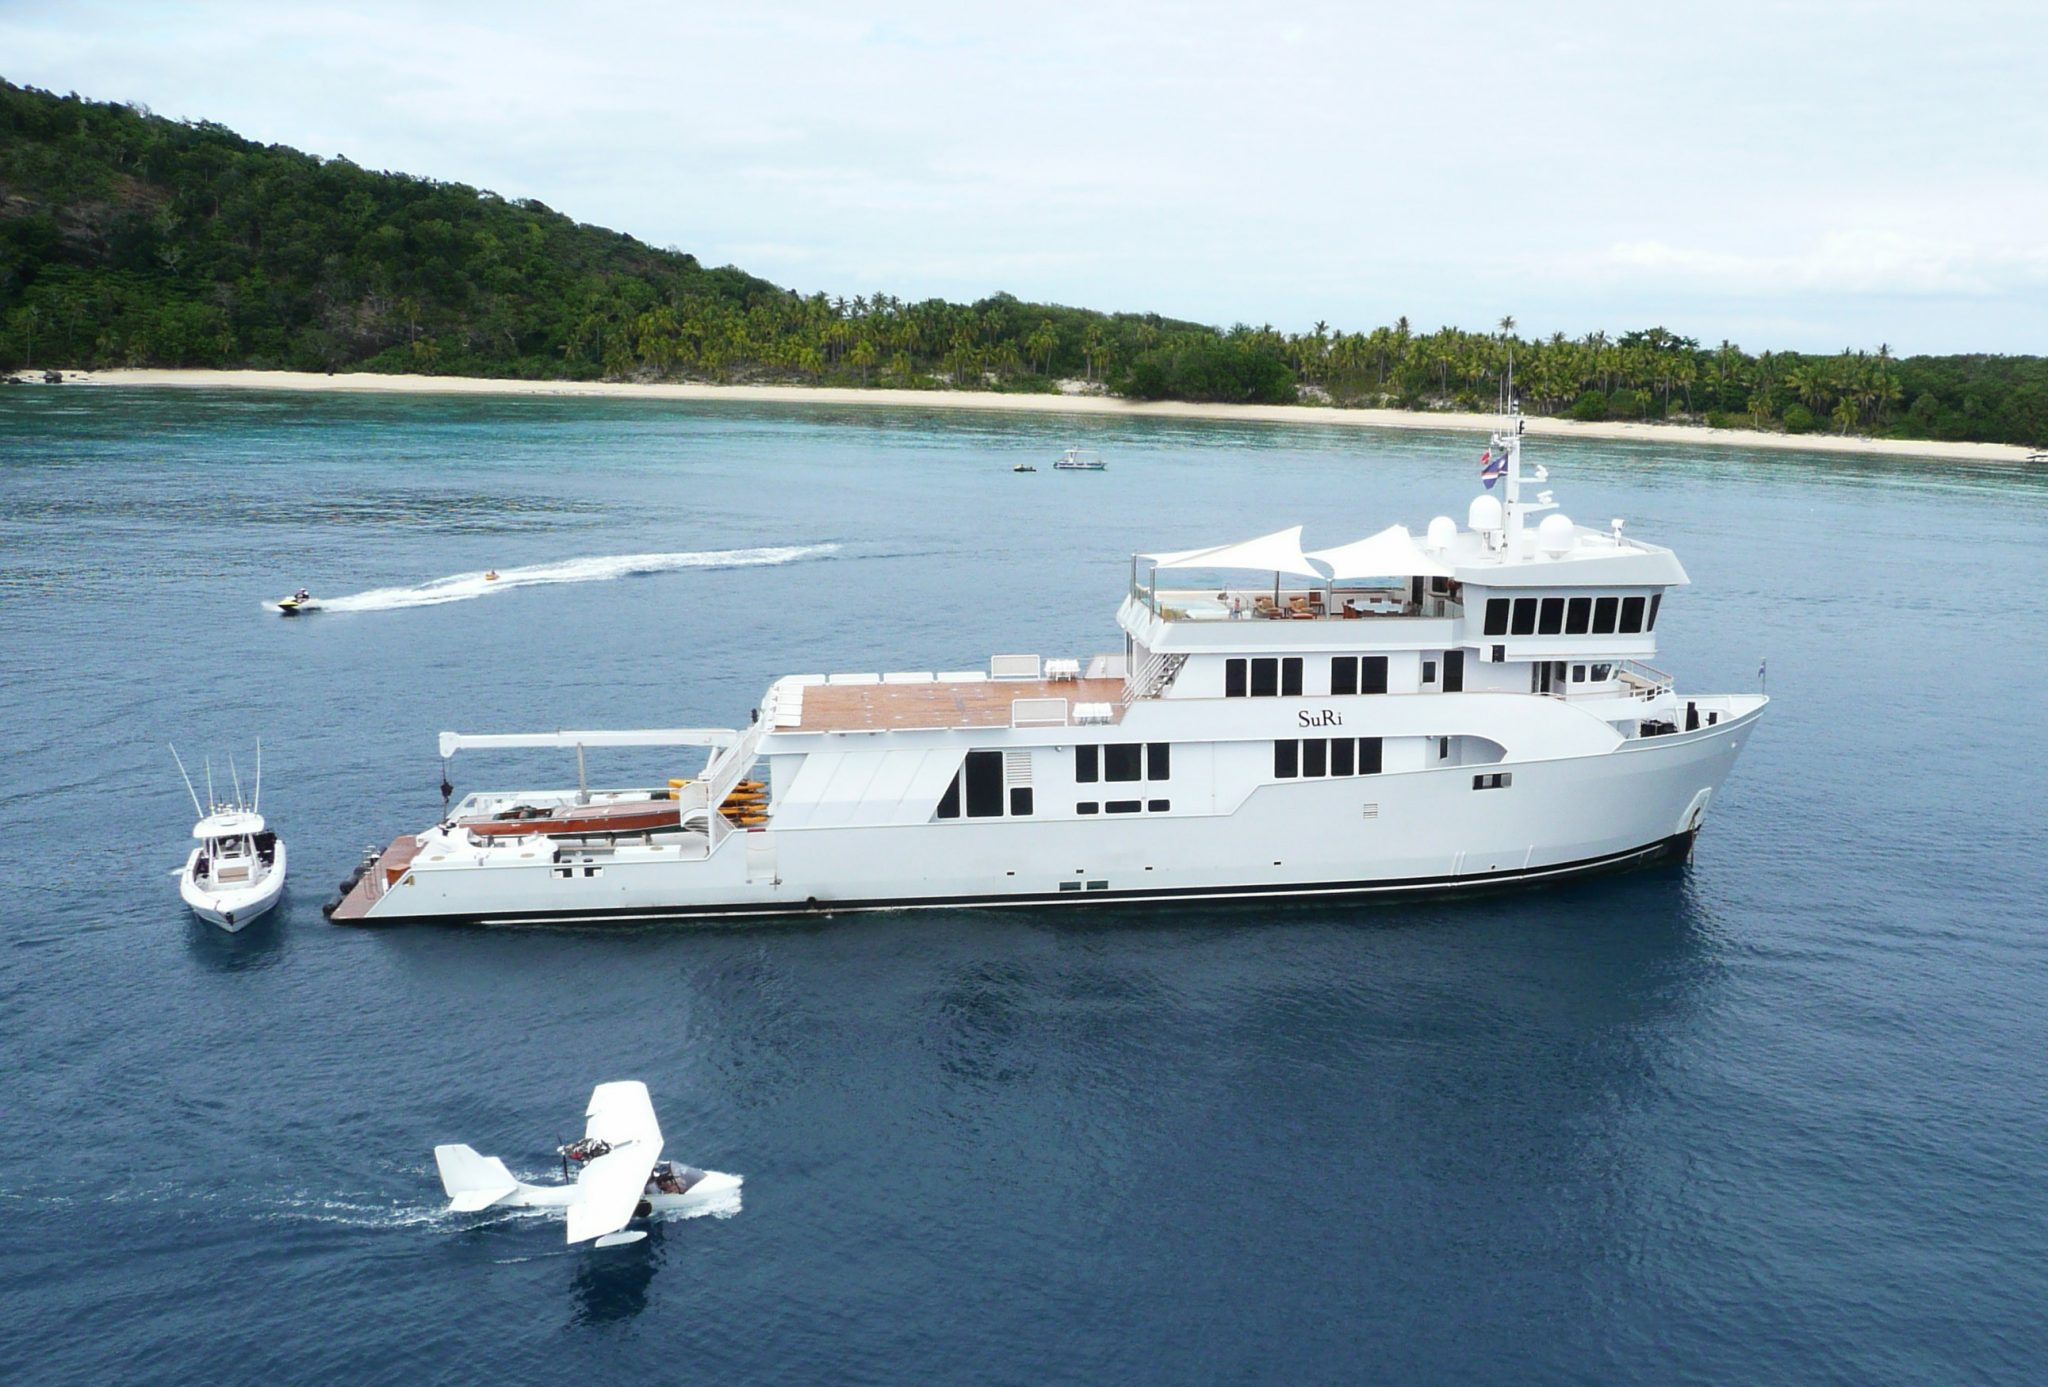 SuRi listed for sale with YACHTZOO - YACHTZOO – yachts for